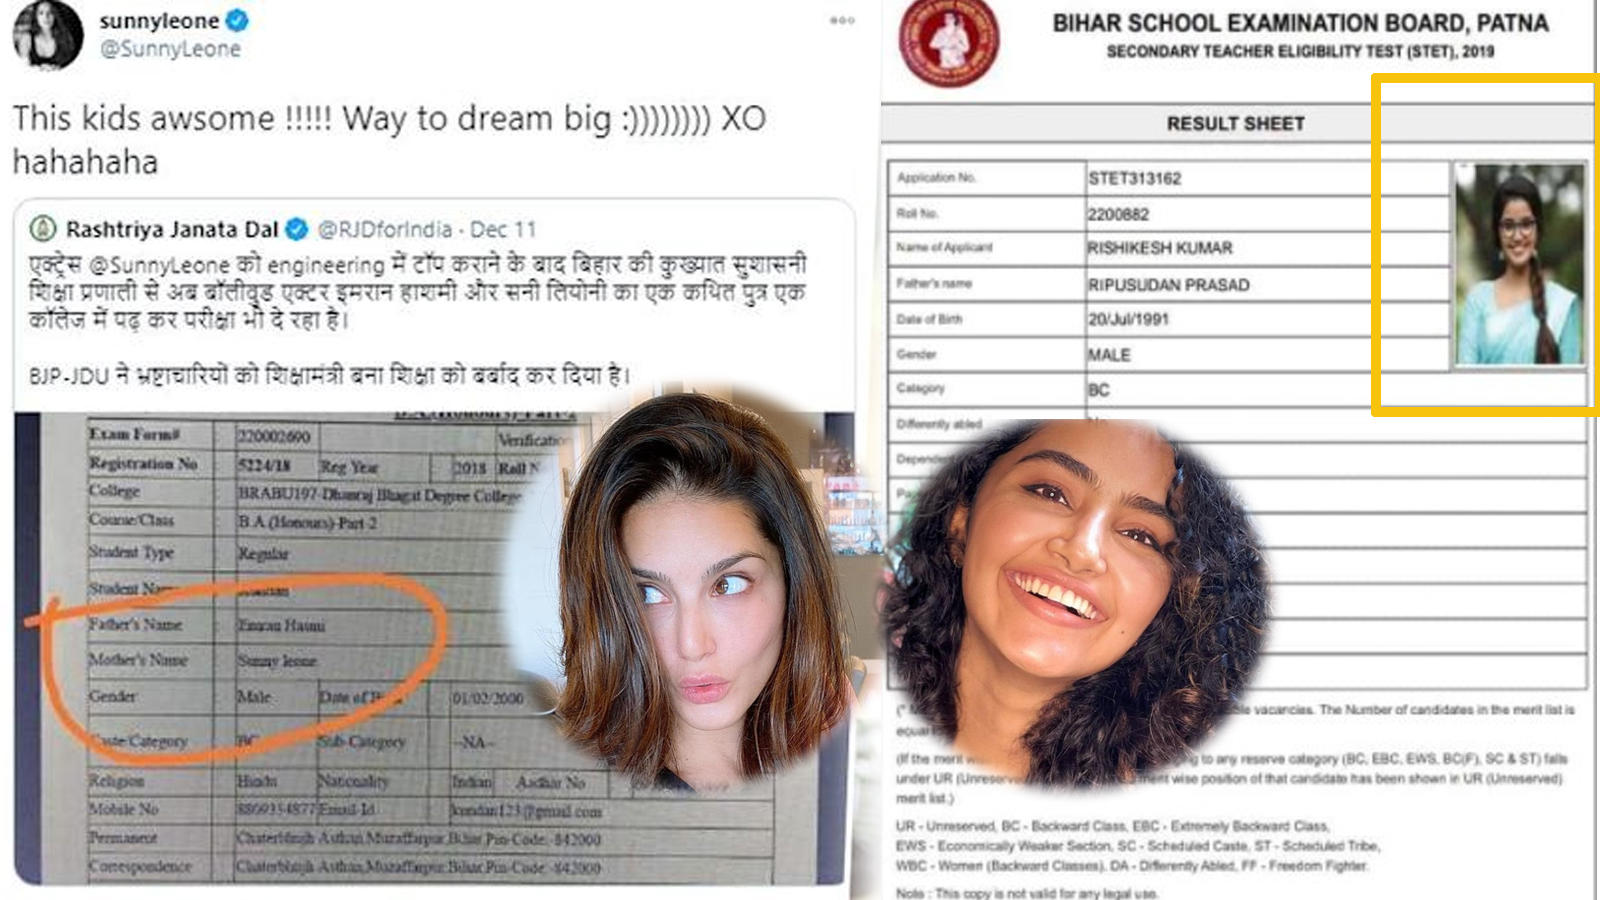 after-sunny-leones-name-malayalam-actress-anupama-parameswaran-features-in-bihars-examination-result-for-state-teacher-eligibility-test